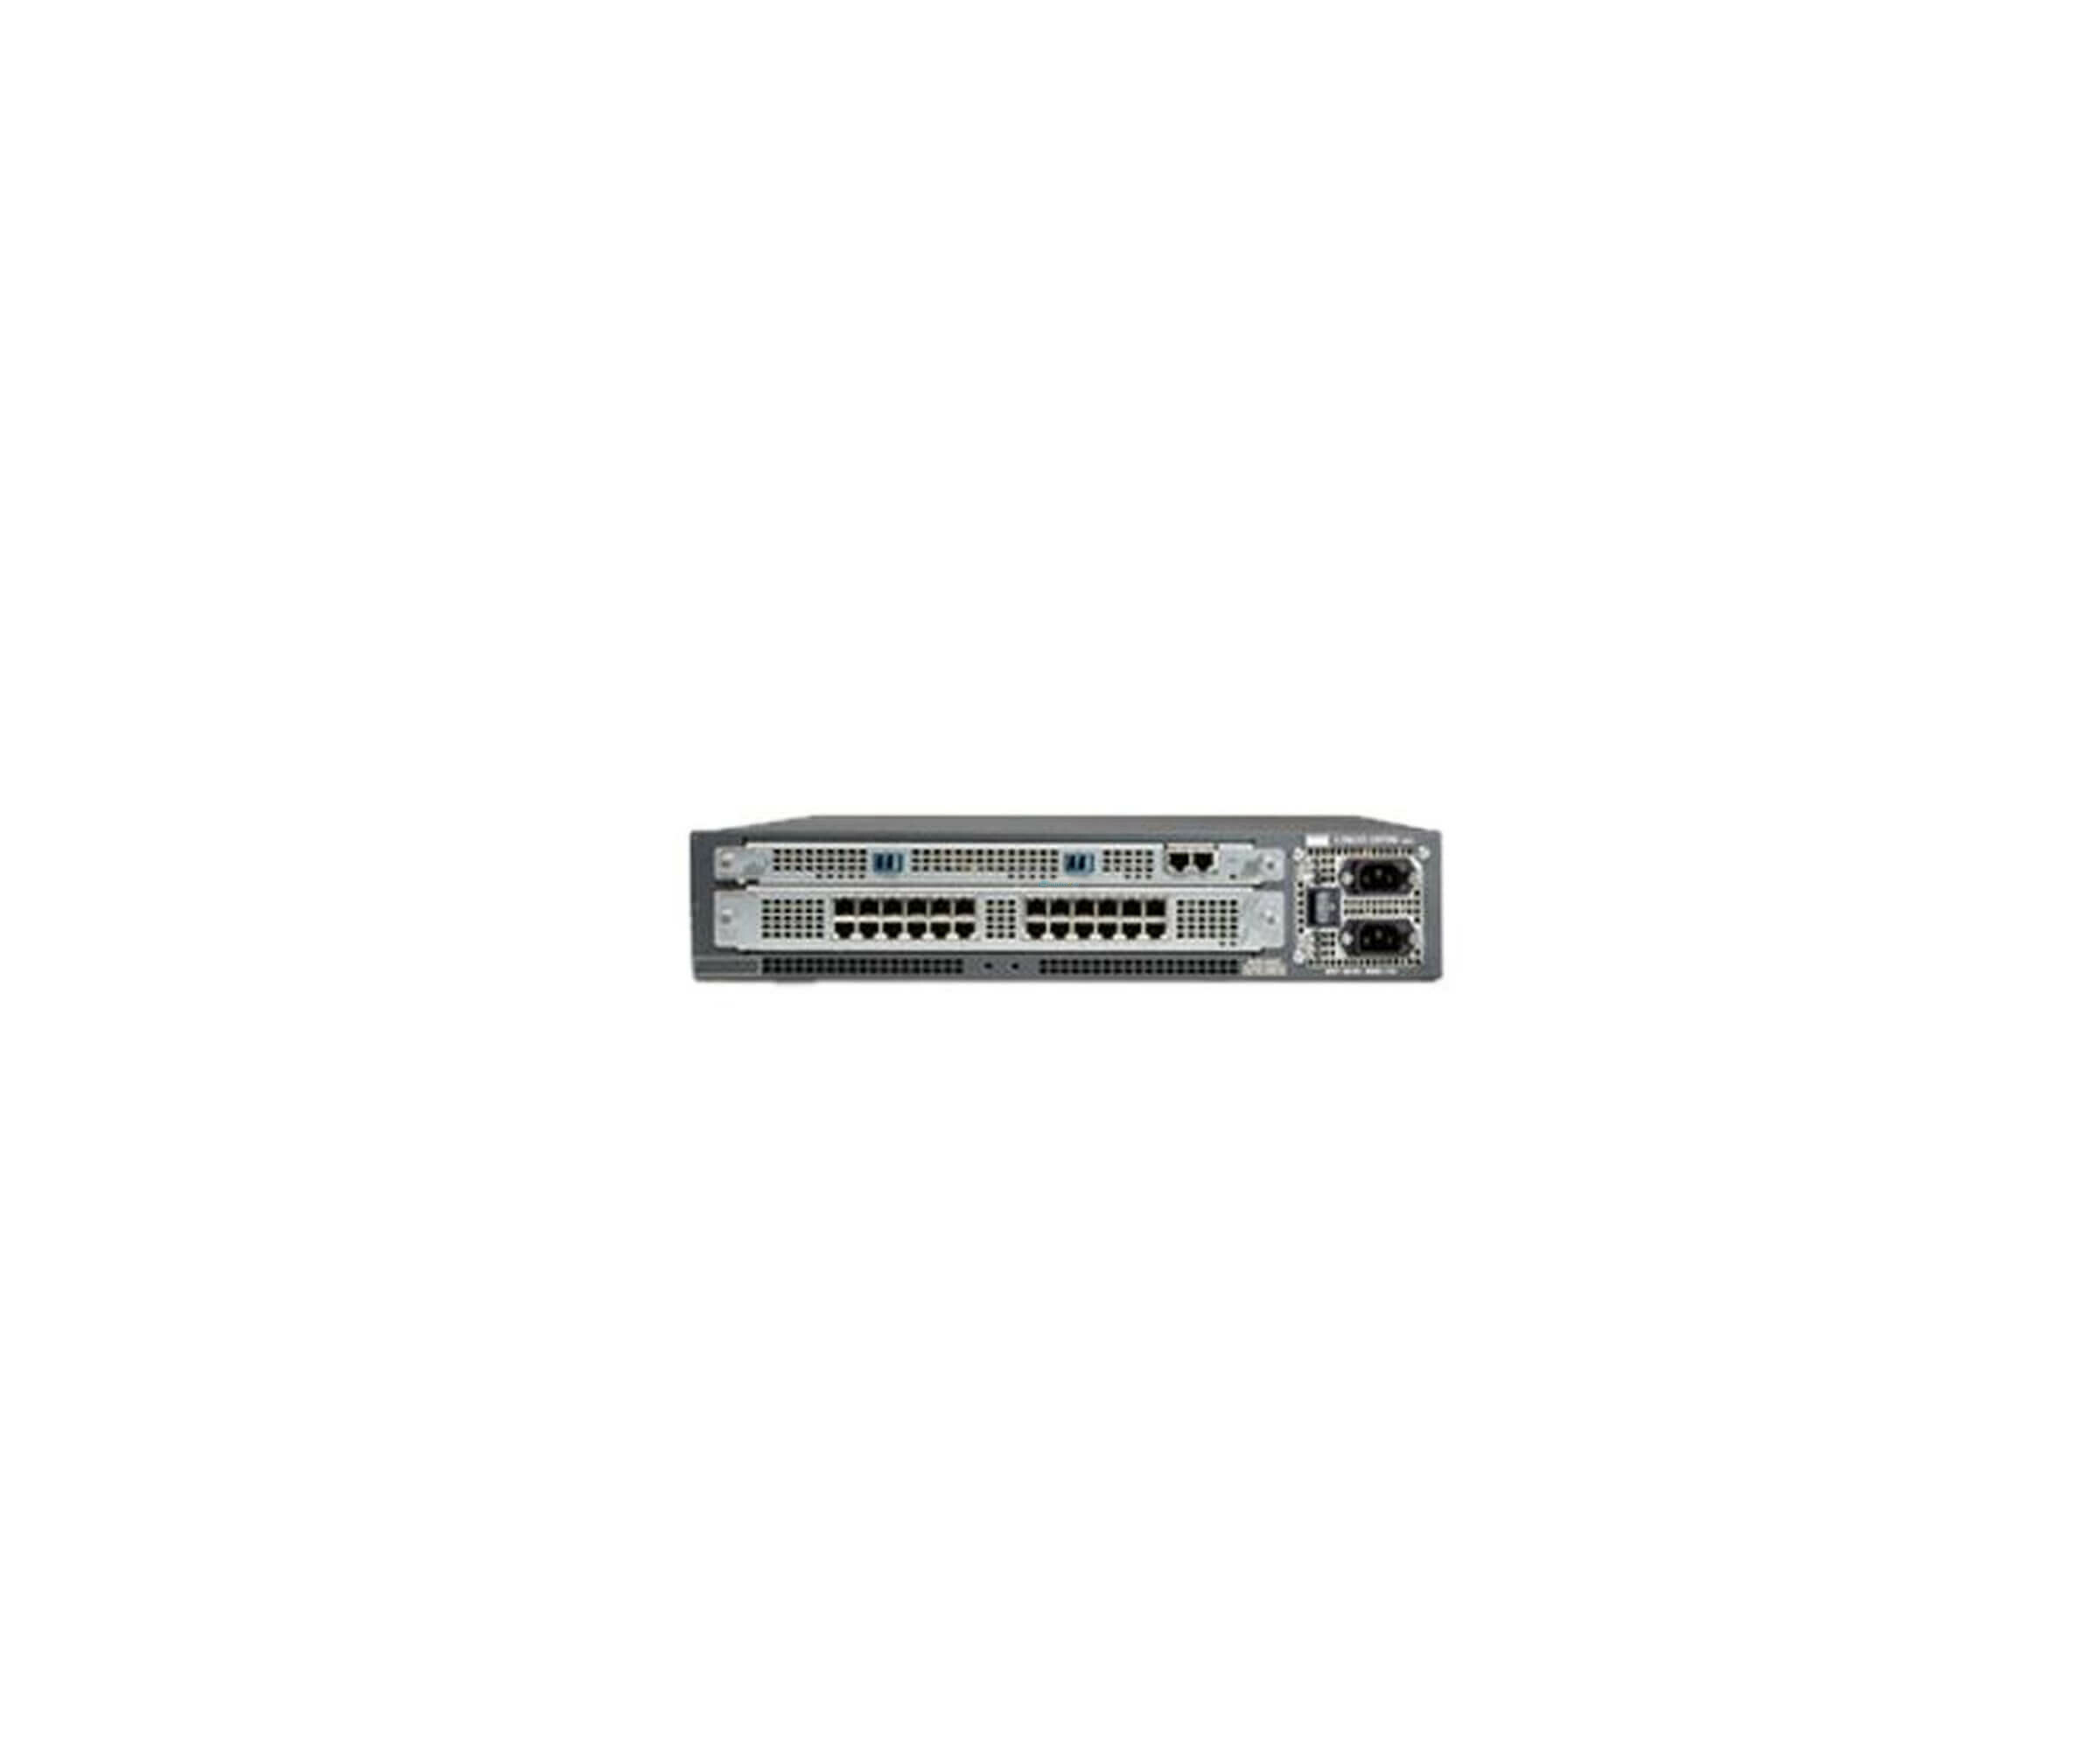 Cisco 10720 Internet Router - Router - Cisco IOS - Rack-montierbar - Gebraucht